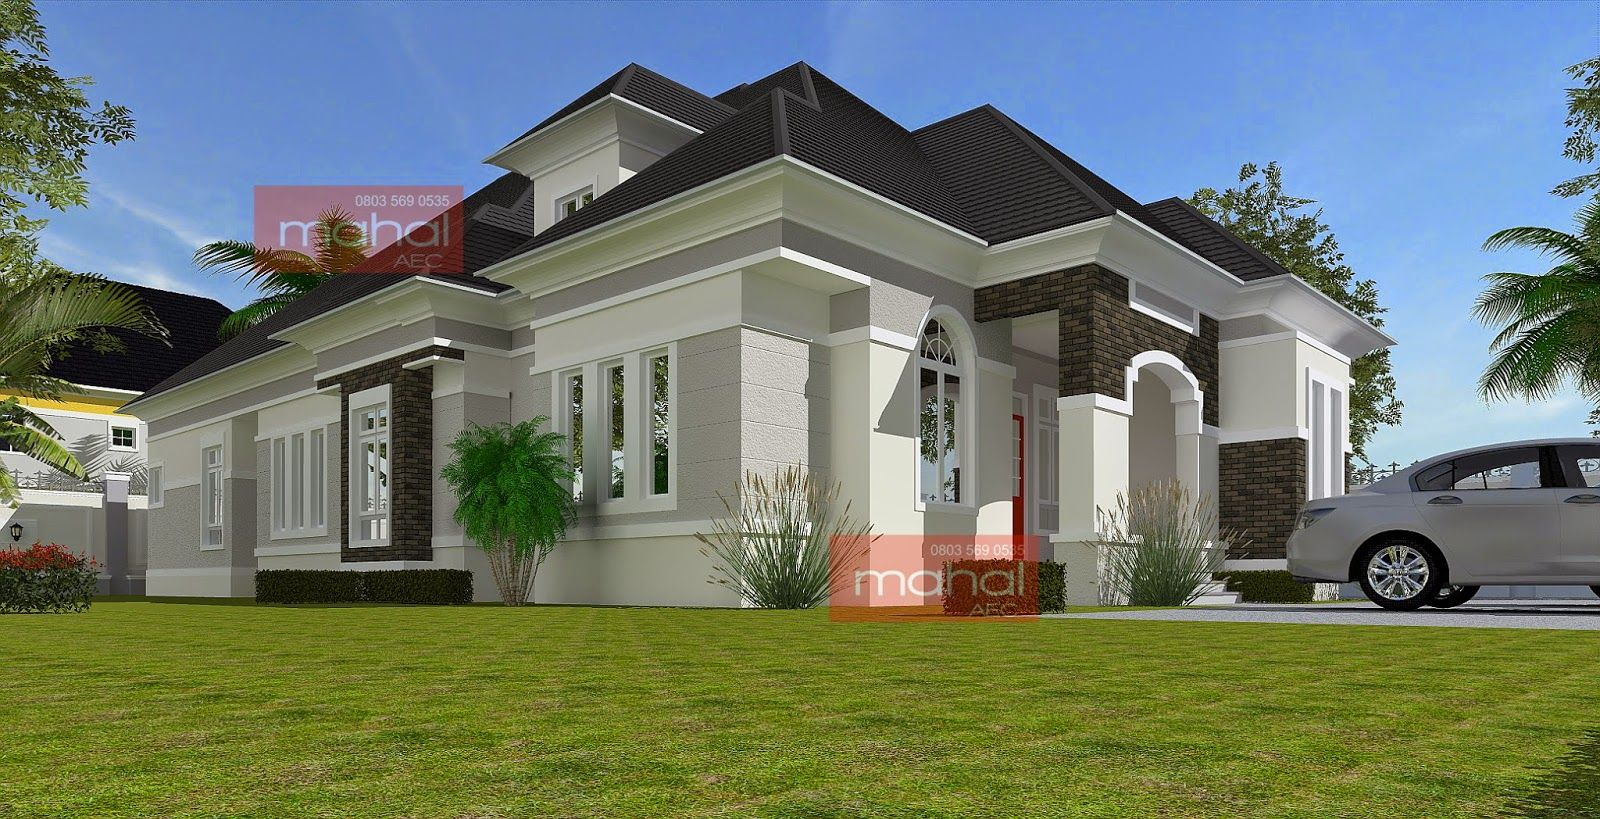 a1734dbee6f416fc547d951921a7d89c - 27+ Executive Bungalow Residential Modern Duplex House Designs In Nigeria Gif